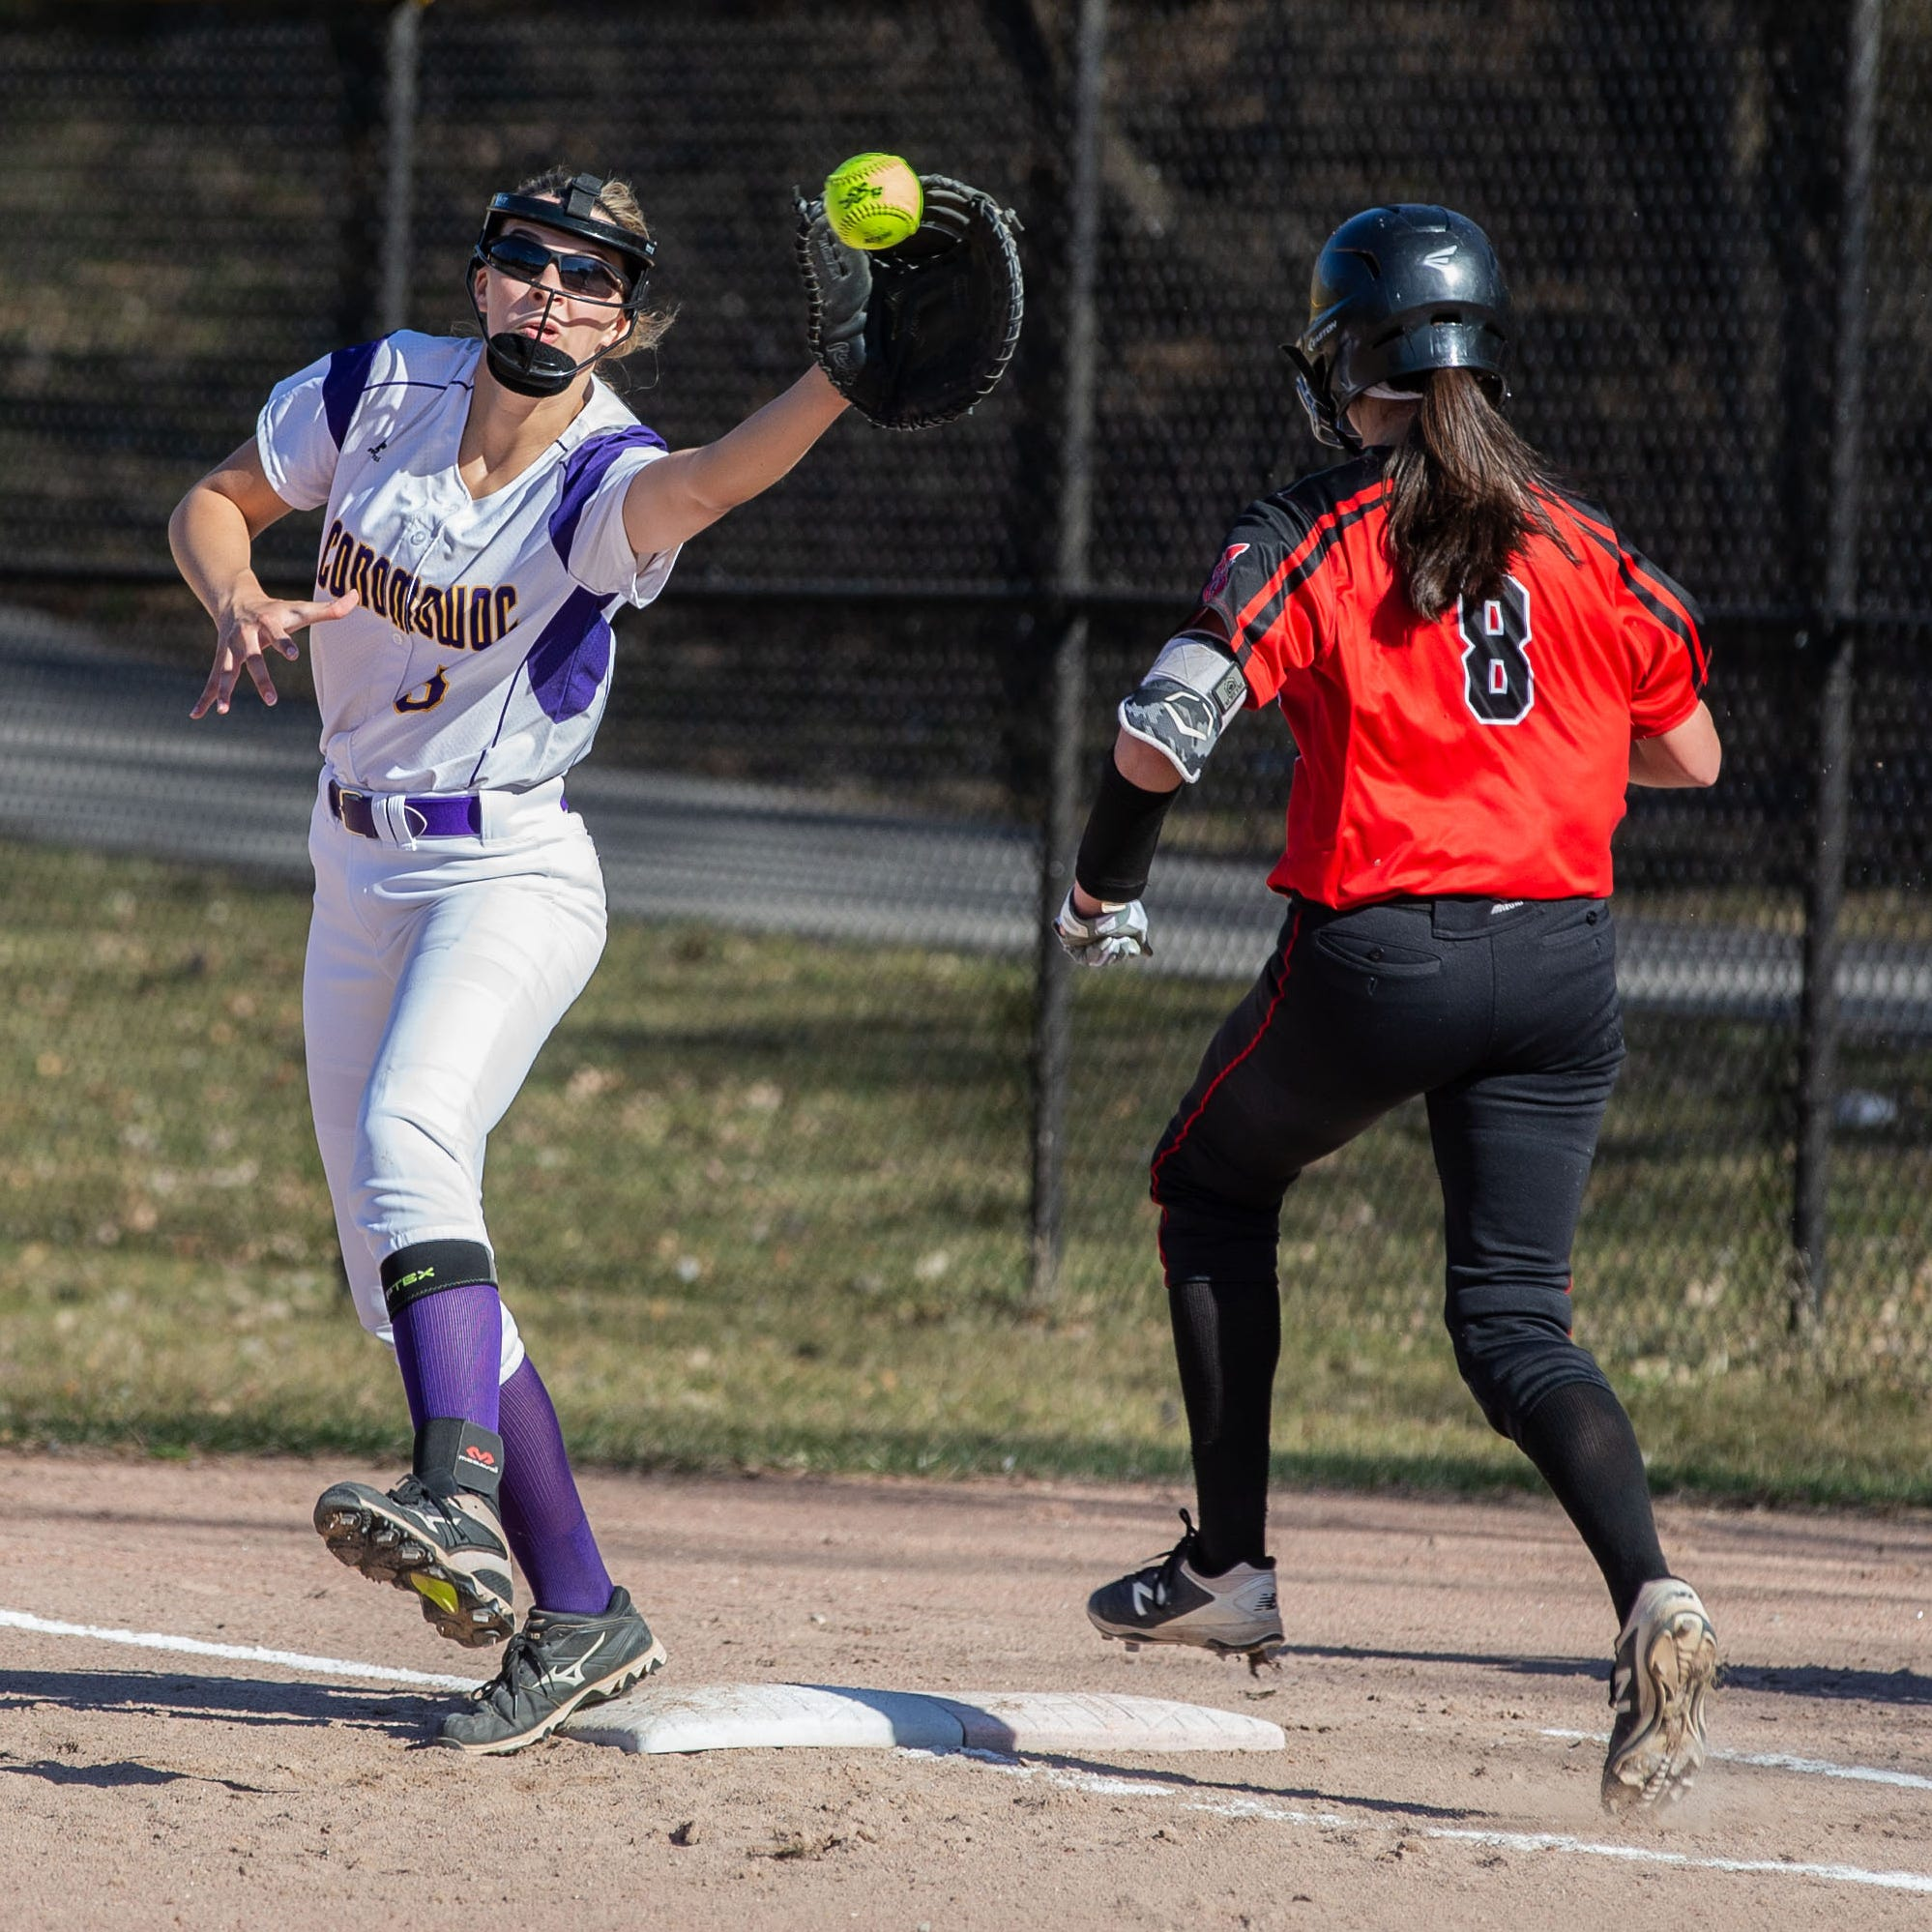 You'll love this video of Oconomowoc softball's choreographed dance between innings